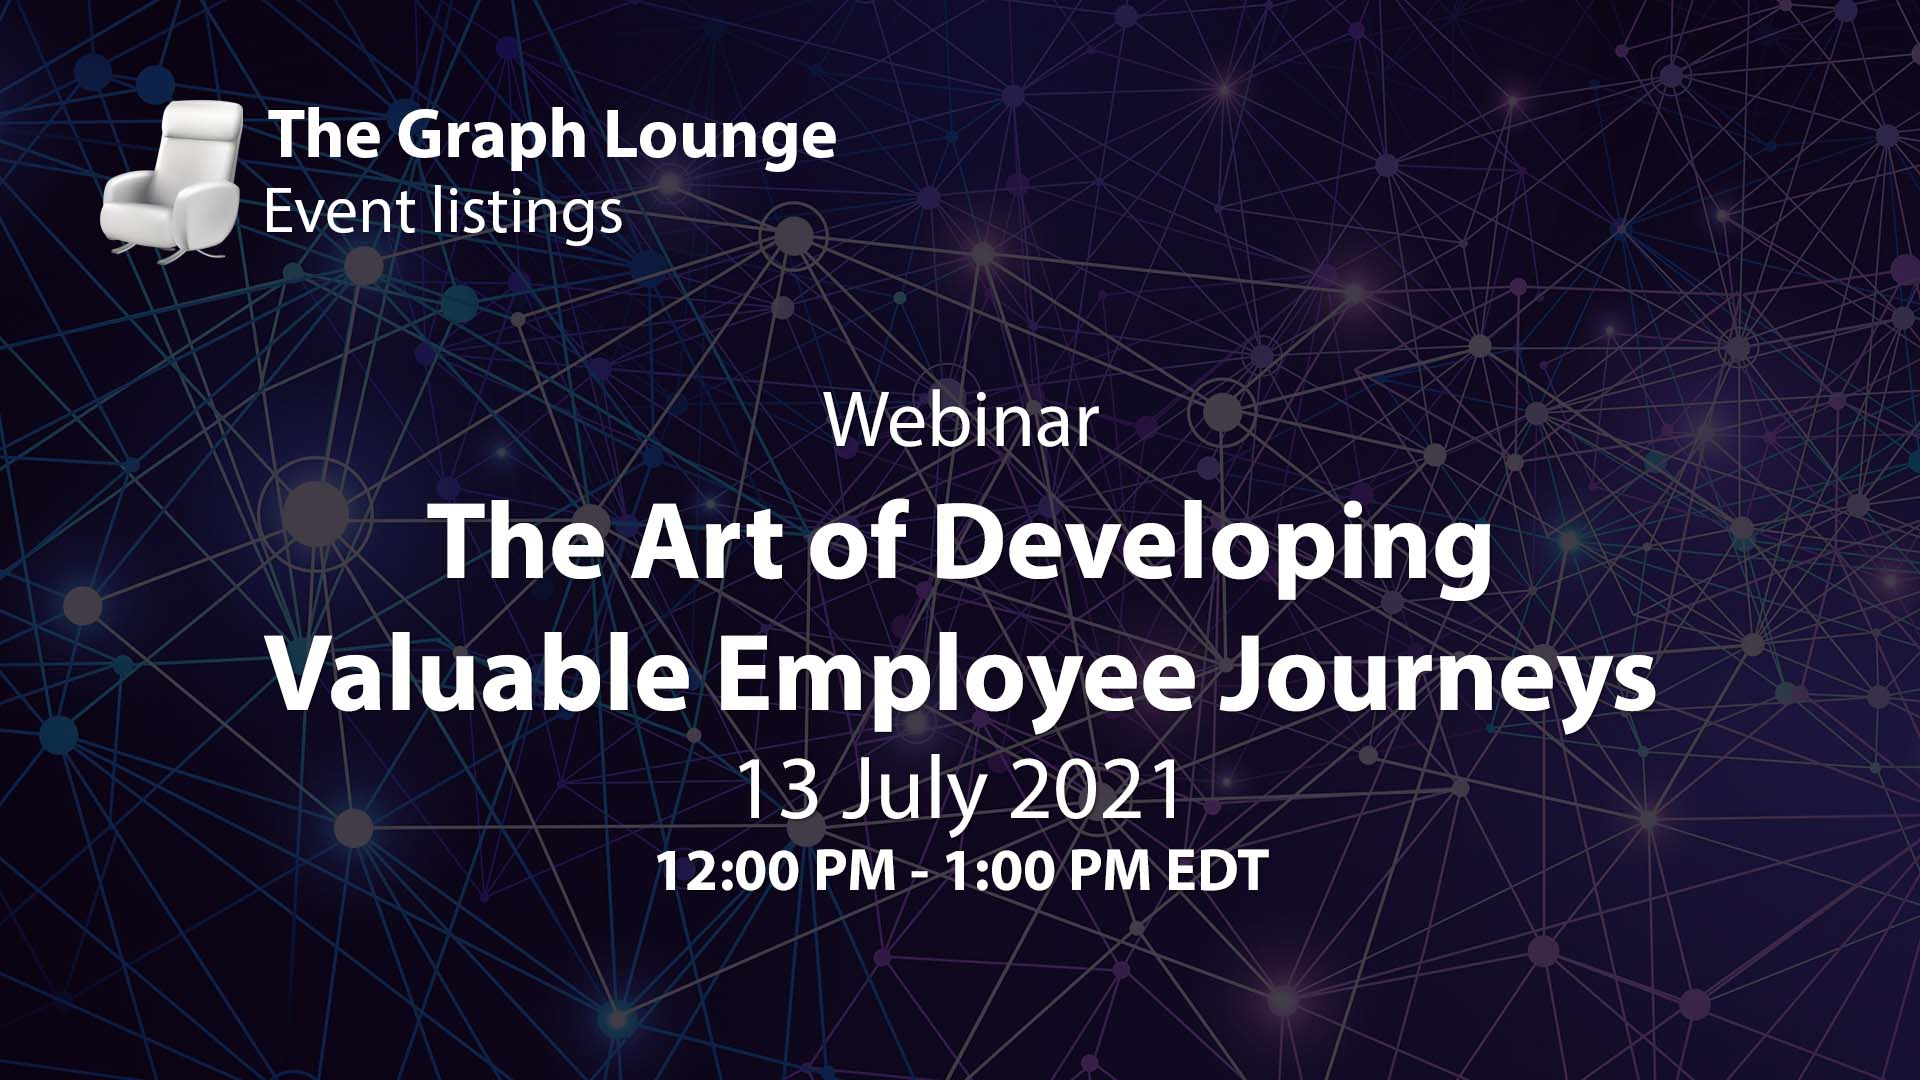 The Art of Developing Valuable Employee Journeys